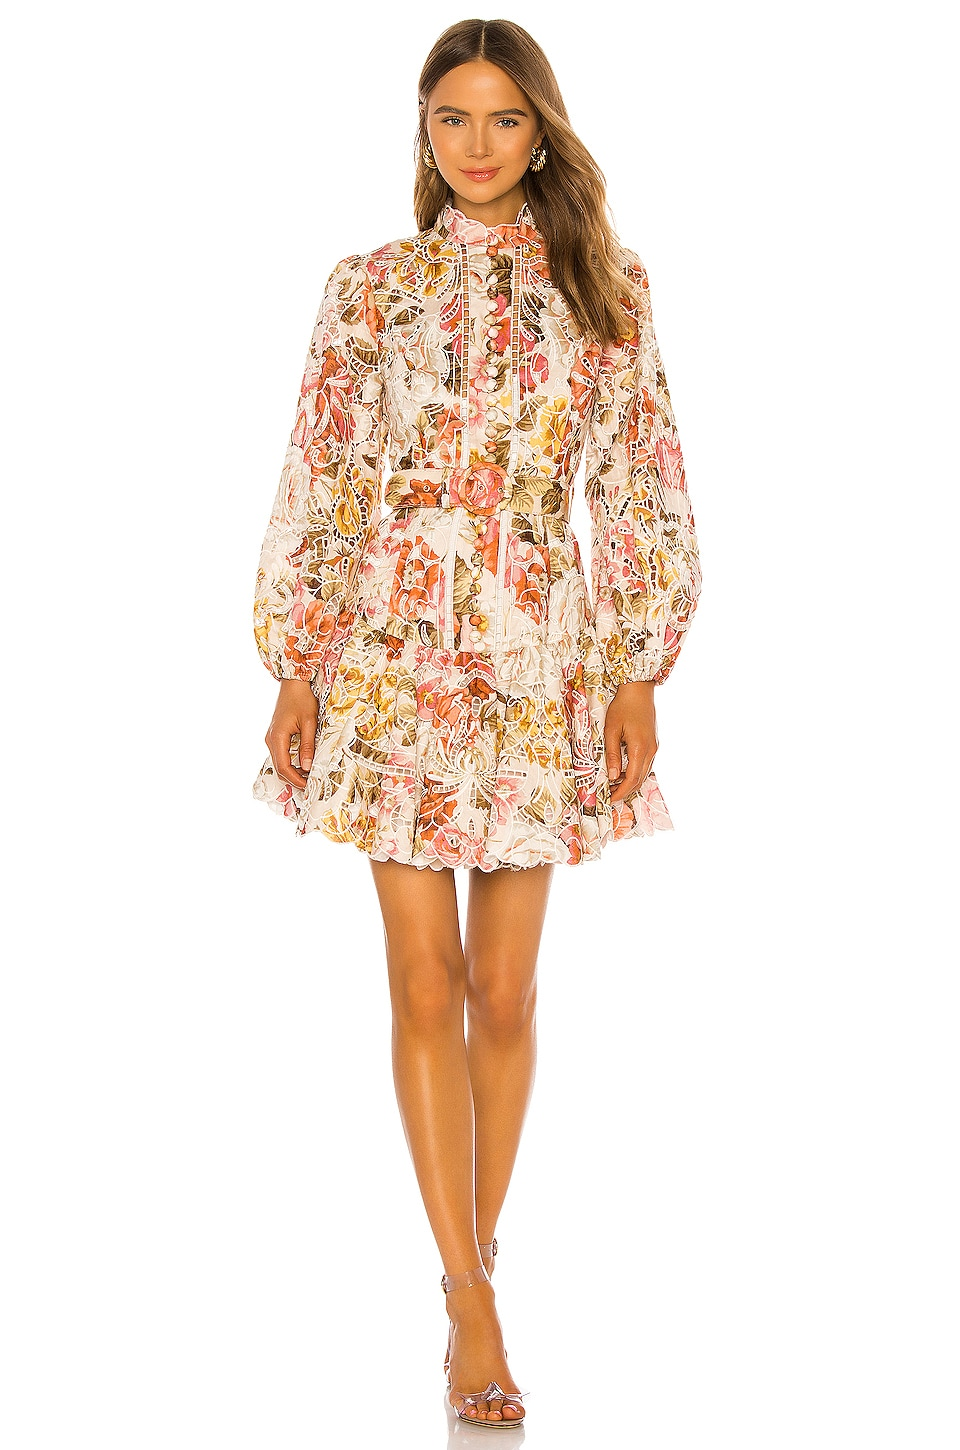 Zimmermann Bonita Embroidery Short Dress in Cream Floral